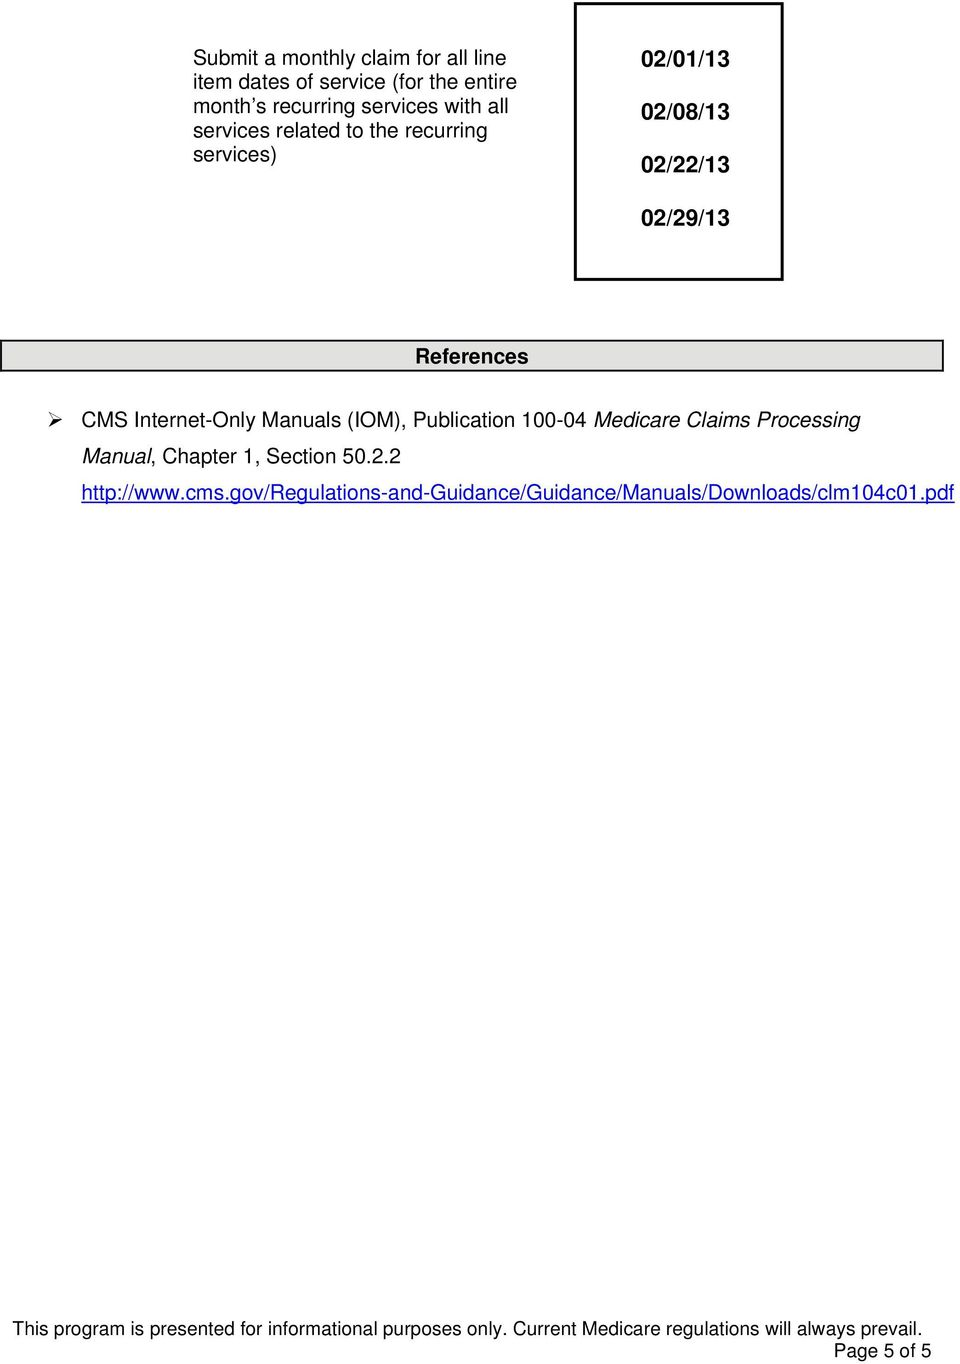 CMS Internet-Only Manuals (IOM), Publication 100-04 Medicare Claims  Processing